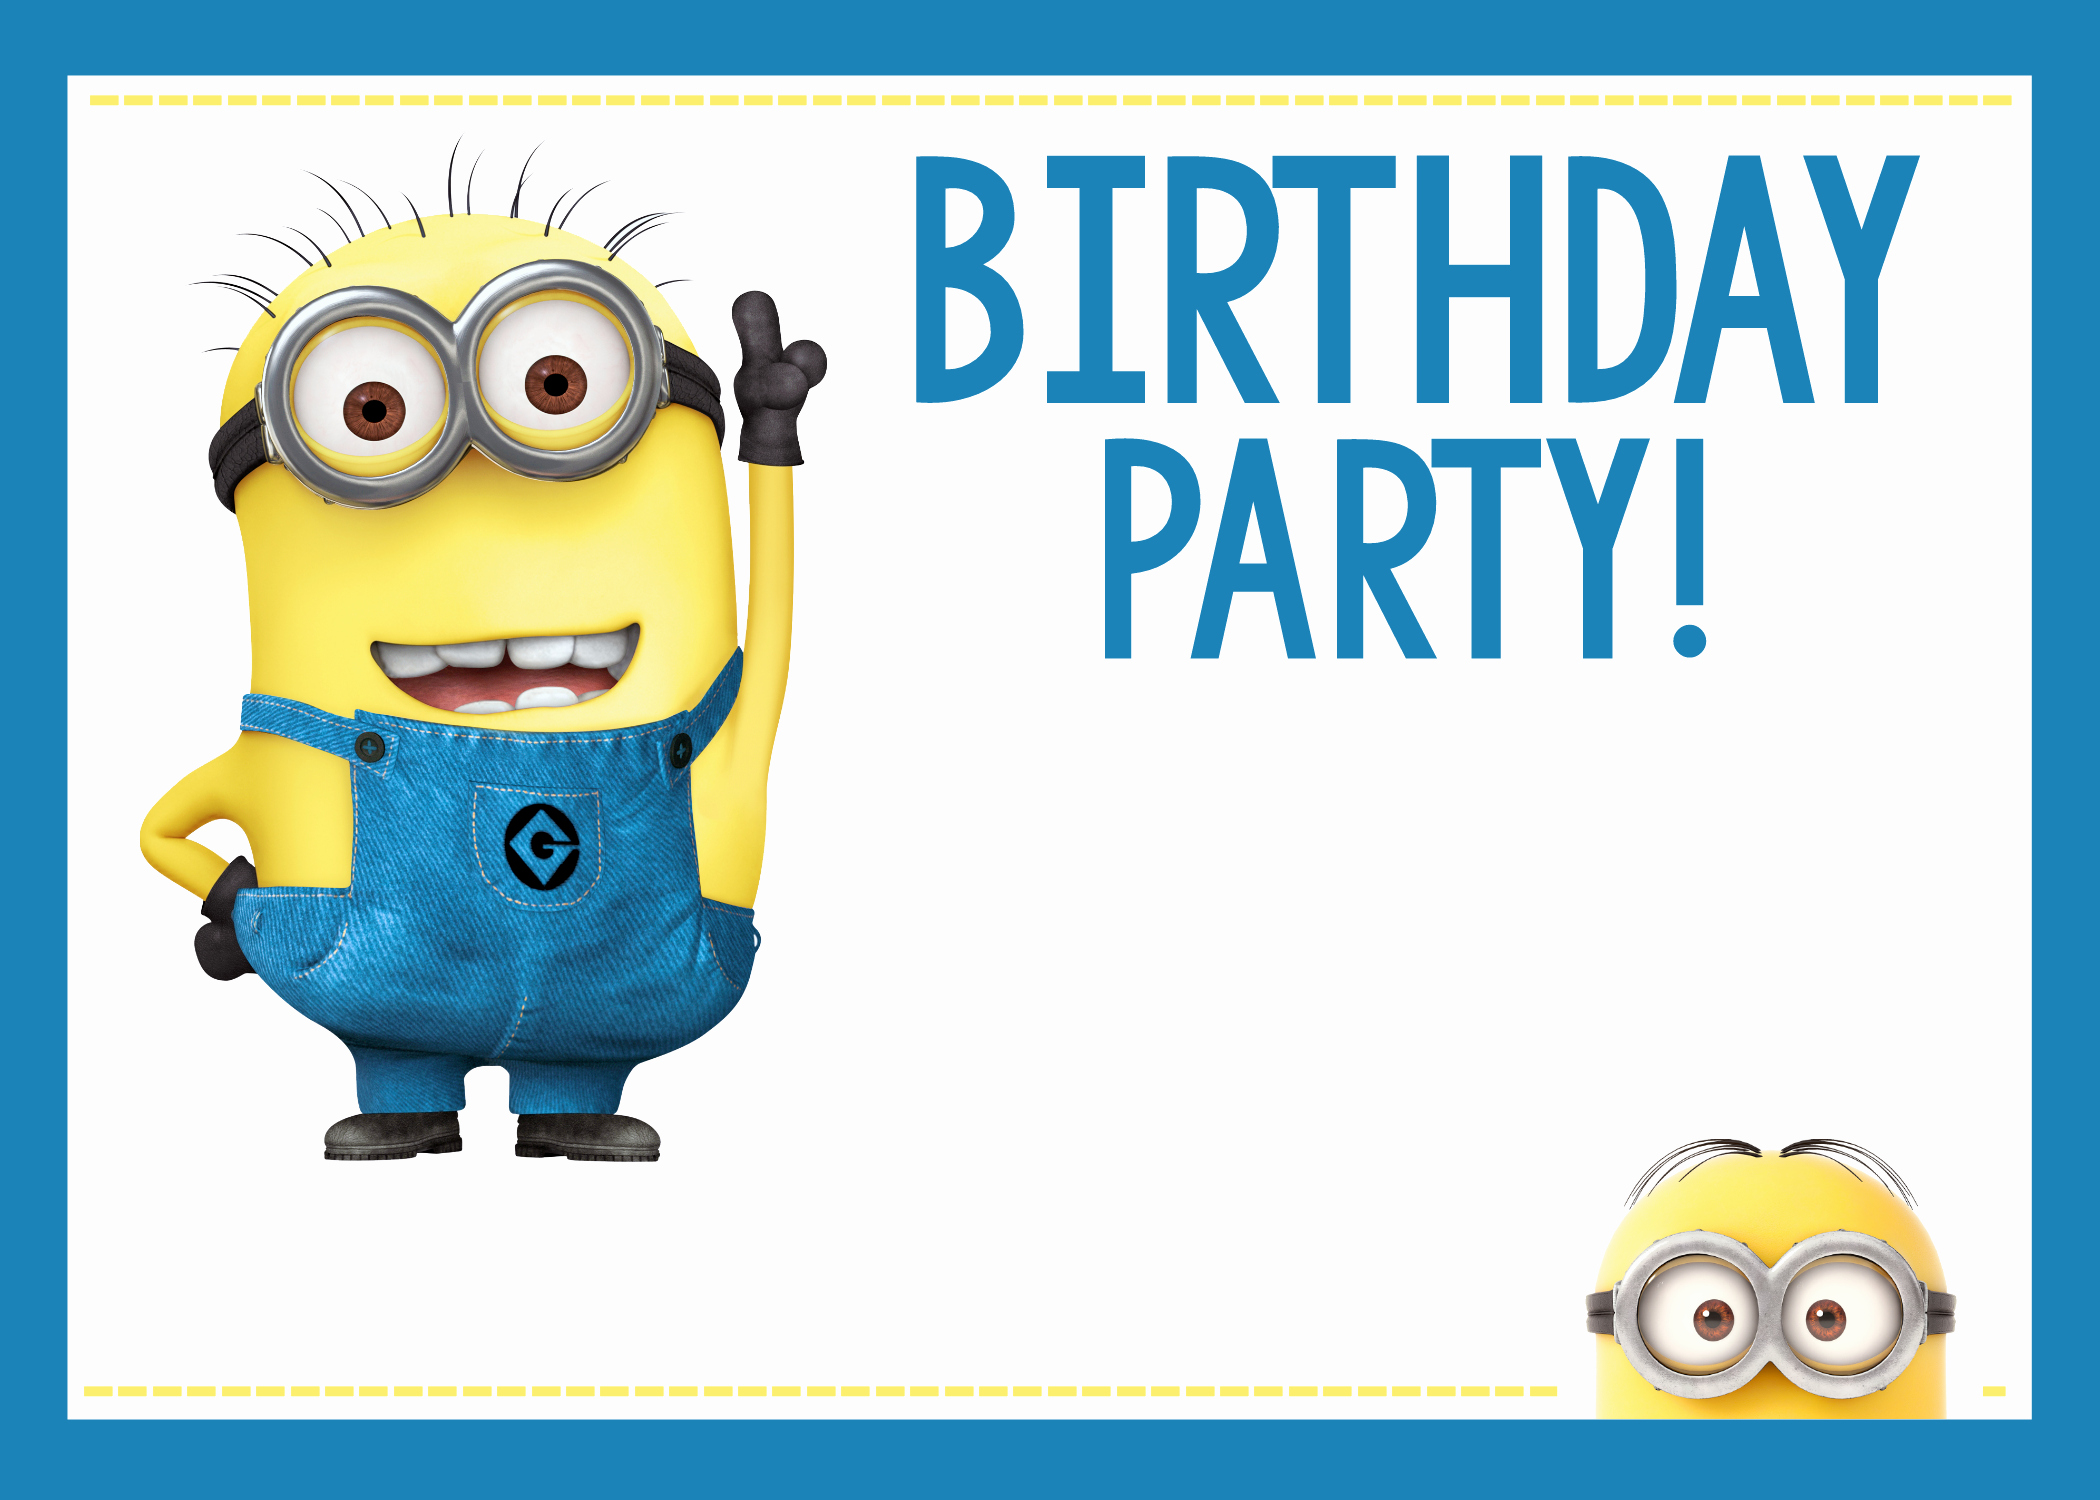 Minions Birthday Invitation Template Fresh Fun Minion Party Ideas for A Birthday – Fun Squared